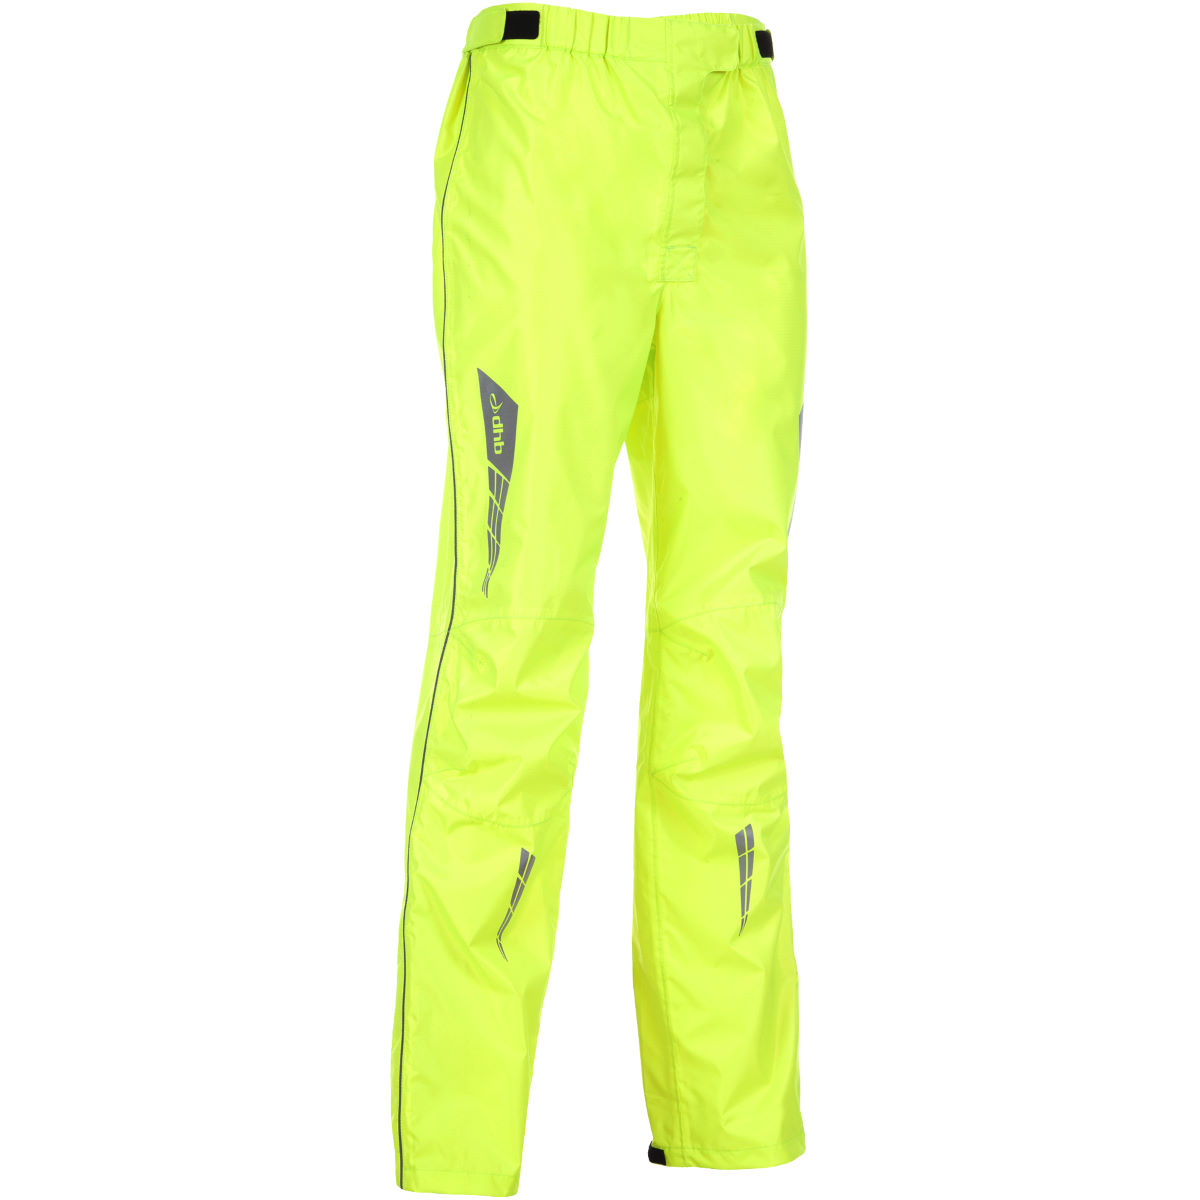 Surpantalon dhb Mono Hi Viz (imperméable) - X Small - Regular Fluro Pantalons vélo imperméables